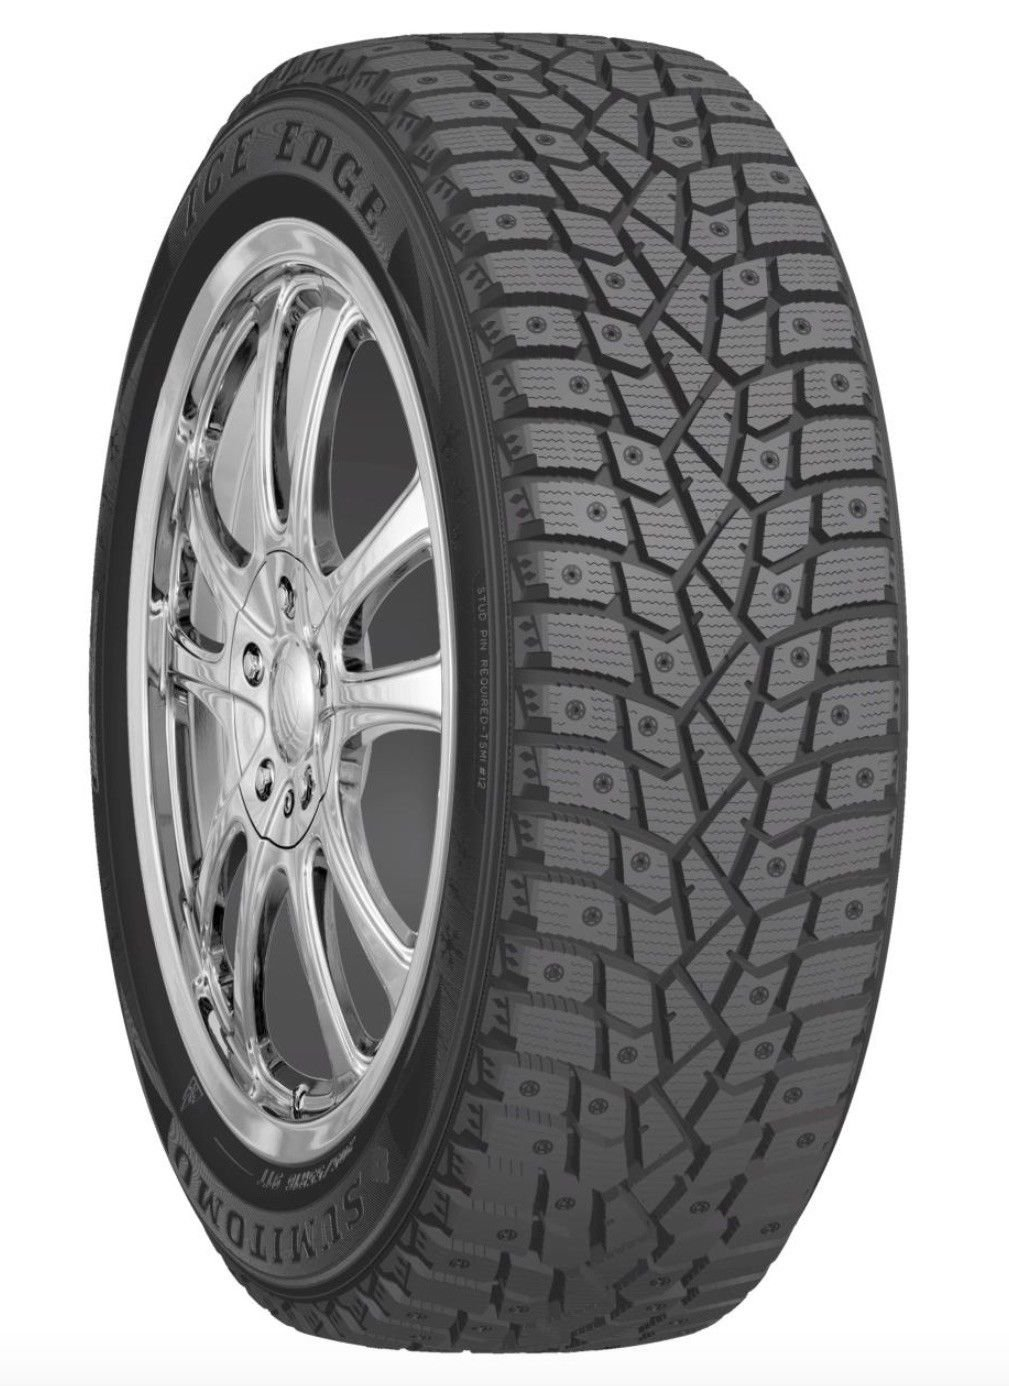 Sumitomo Ice Edge Studable-Winter Radial Tire - 215/55R16 97T by SUMITOMO